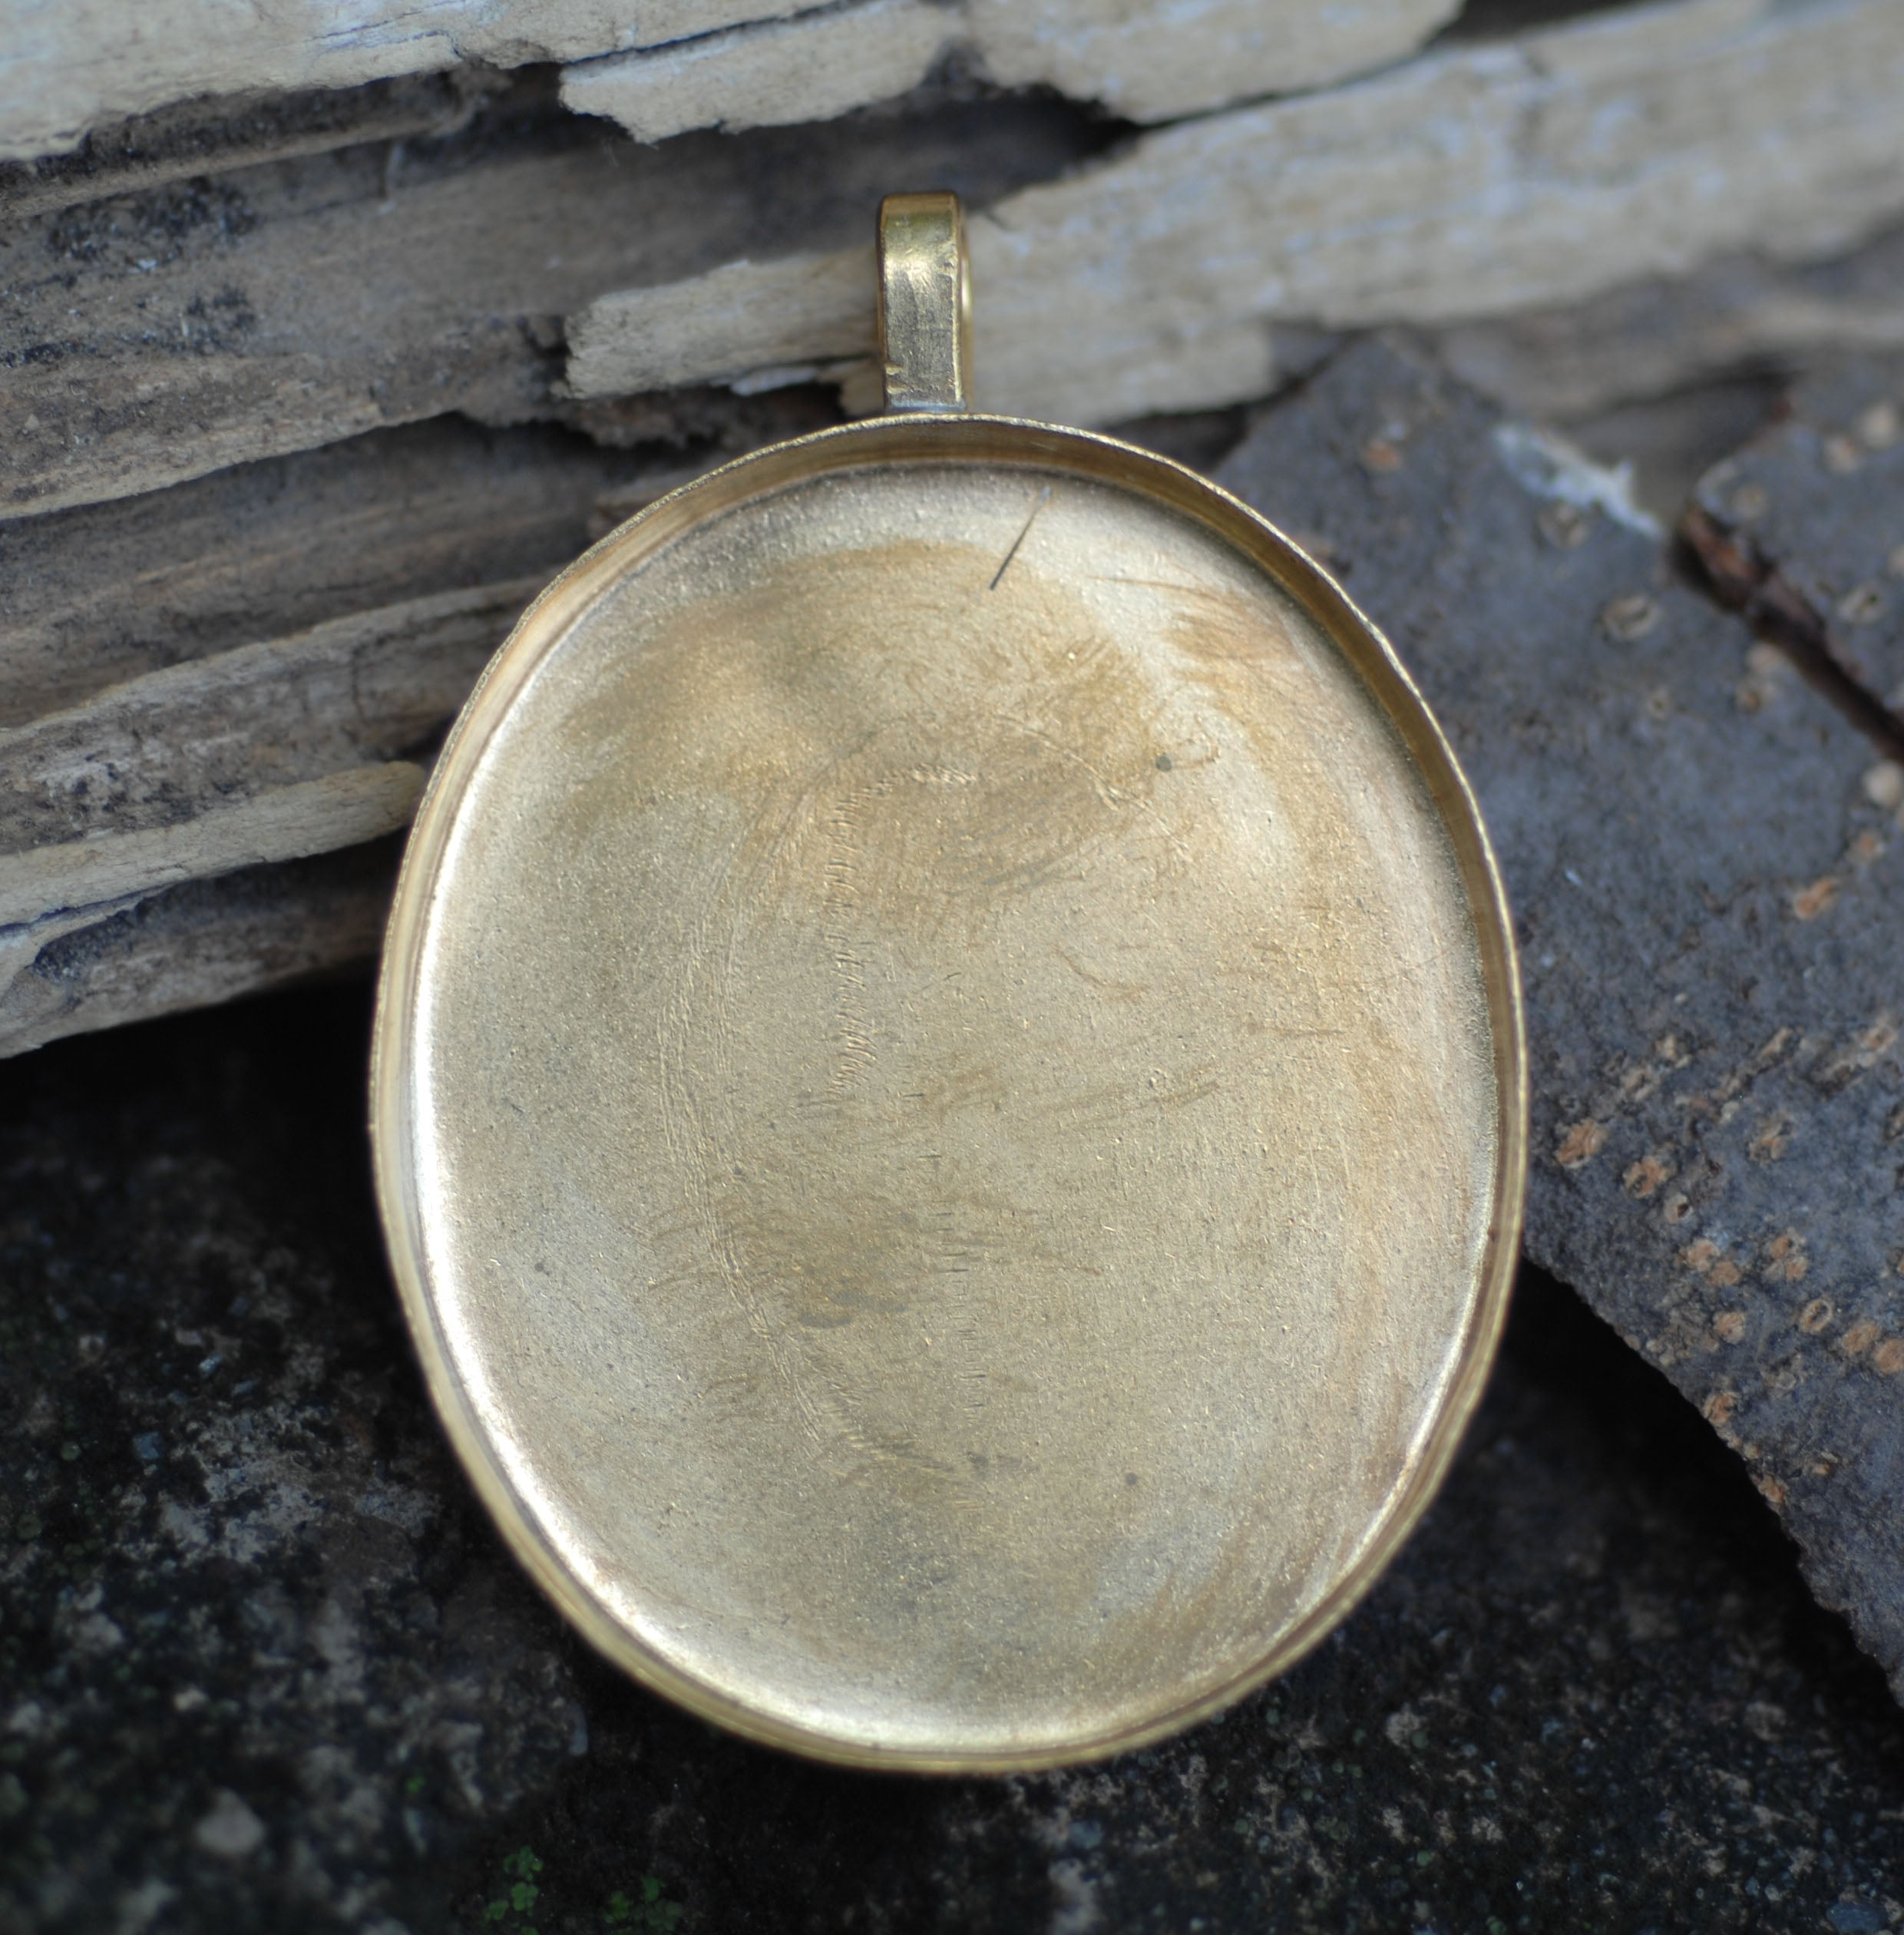 Bezel Cup Pendant for Resin Jewelry - Large Oval Pendant 50mm by 36mm